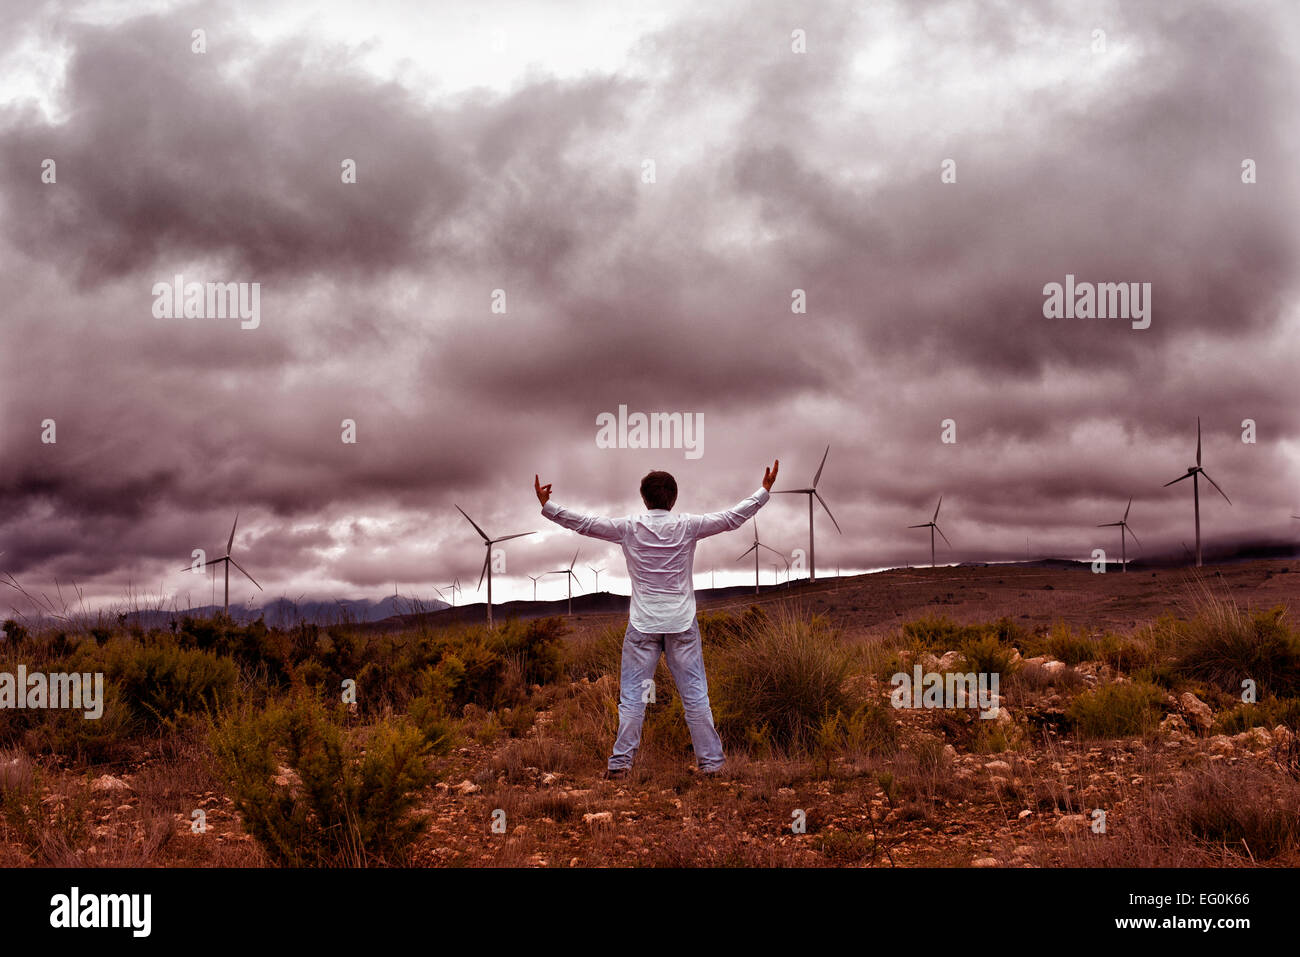 Man looking at storm clouds - Stock Image